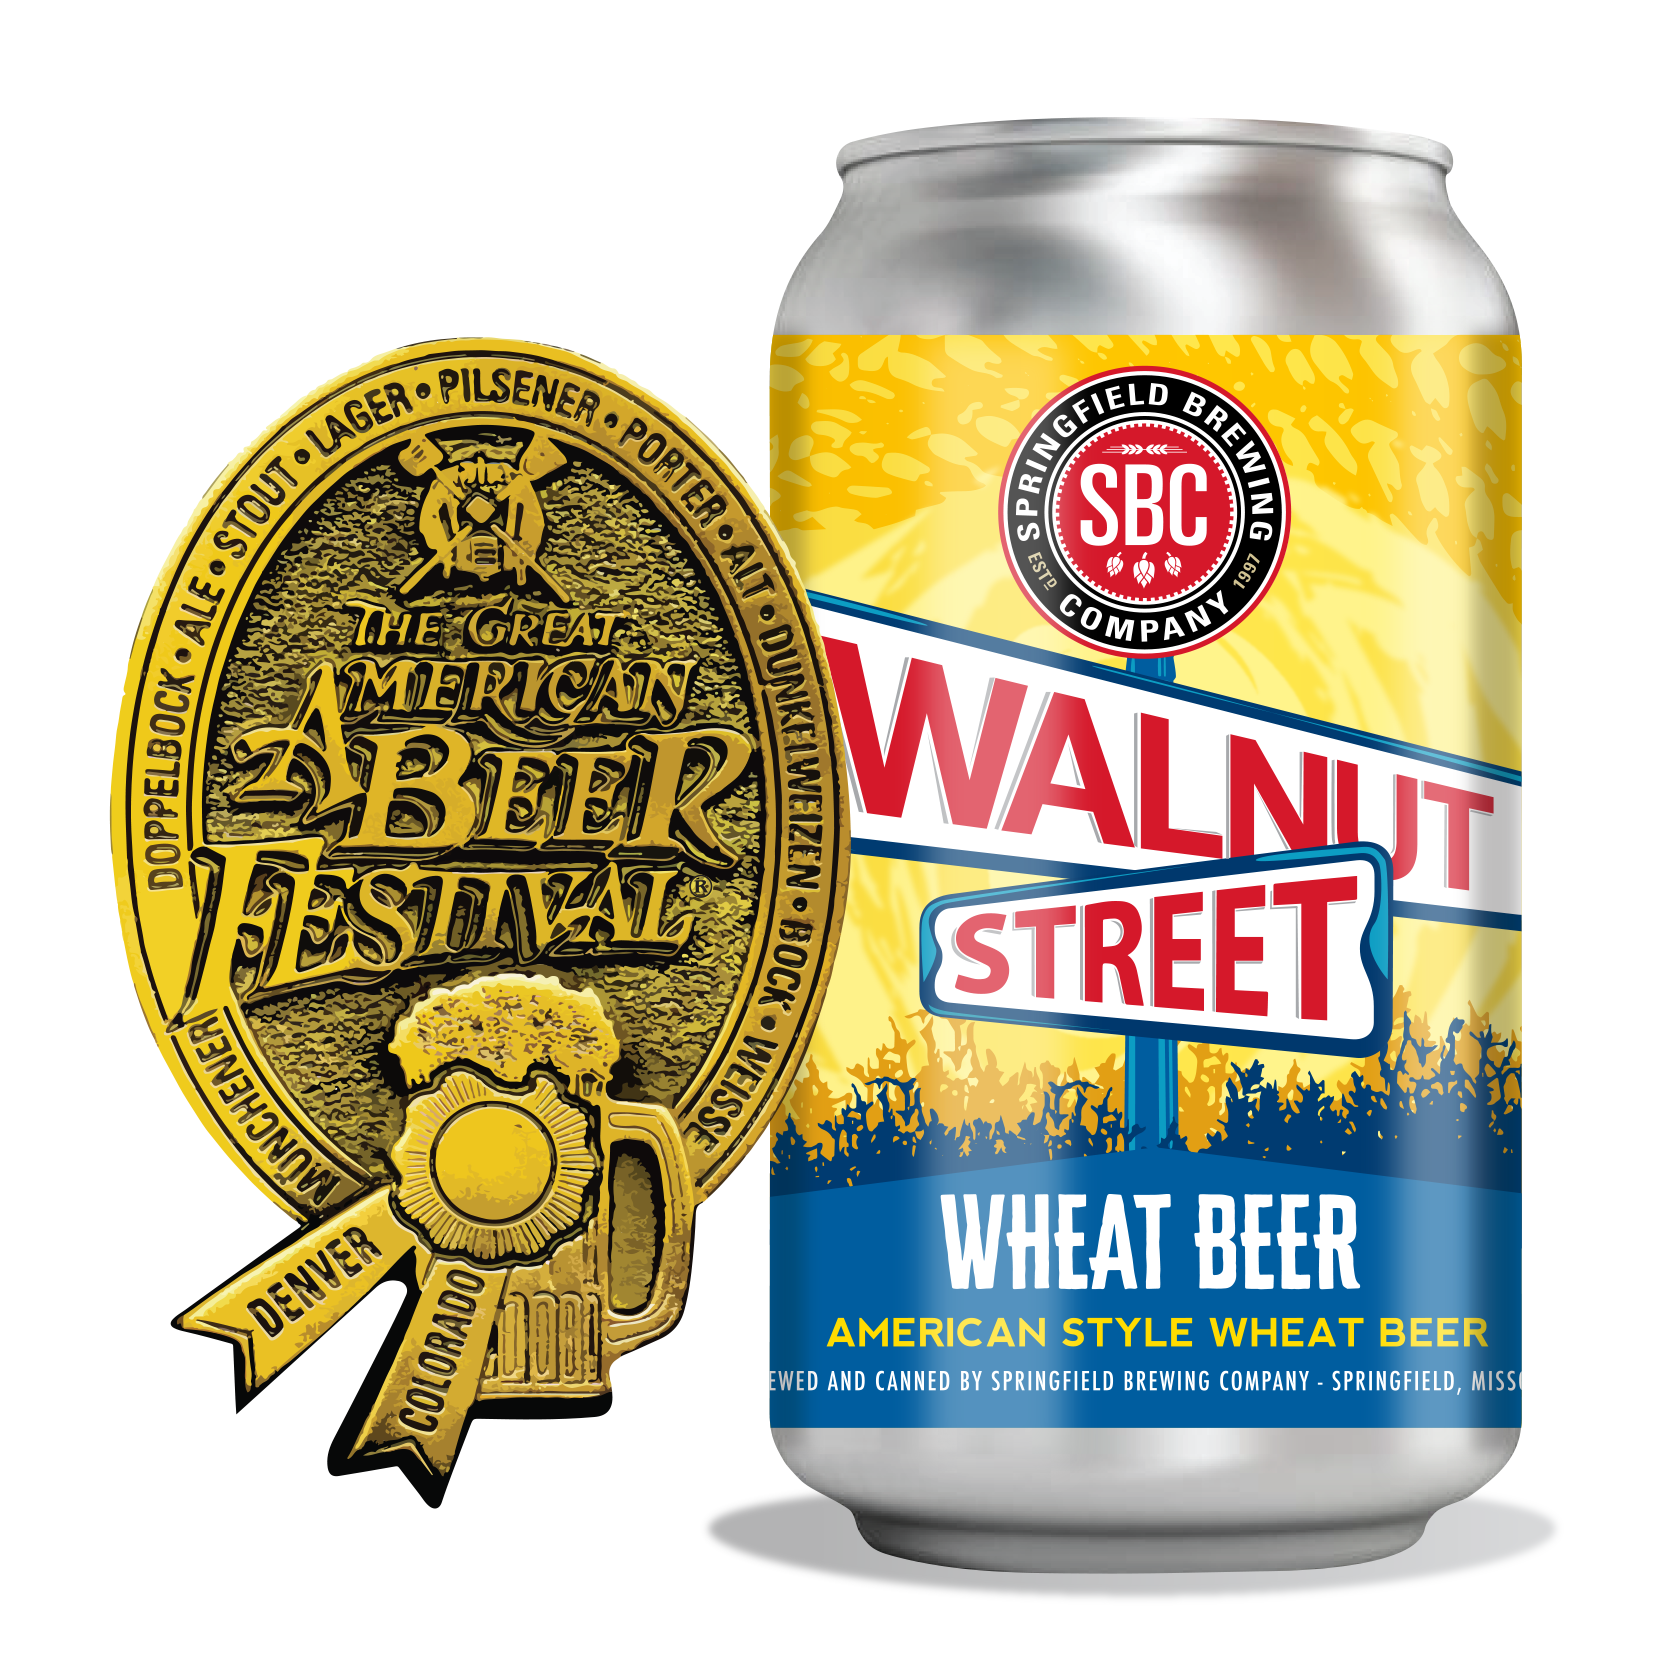 https://brewery.springfieldbrewingco.com/wp-content/uploads/2021/07/GABF_2003Wheat.png